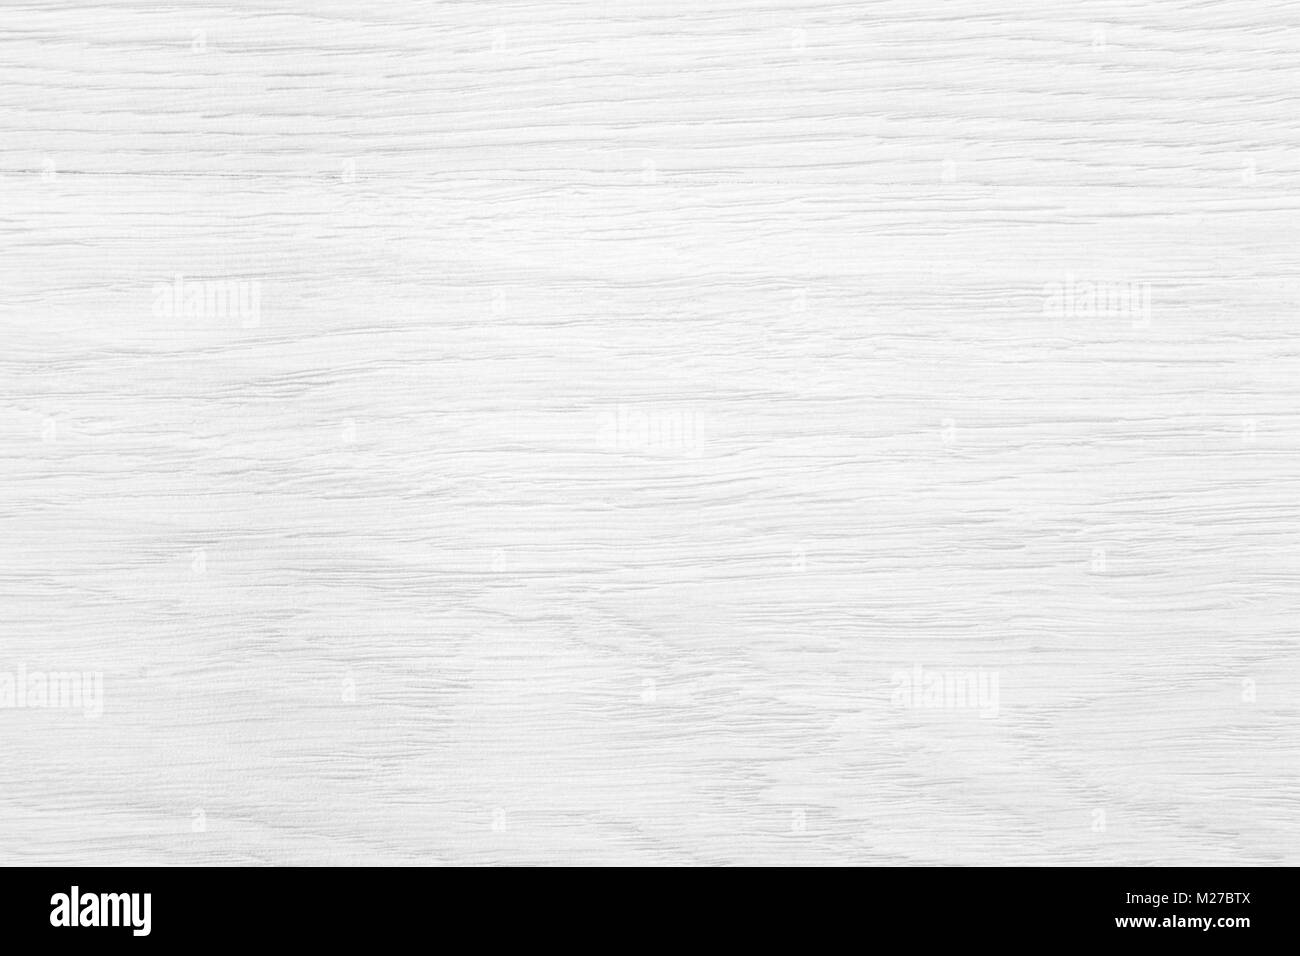 Texture of the white laminate close-up - Stock Image